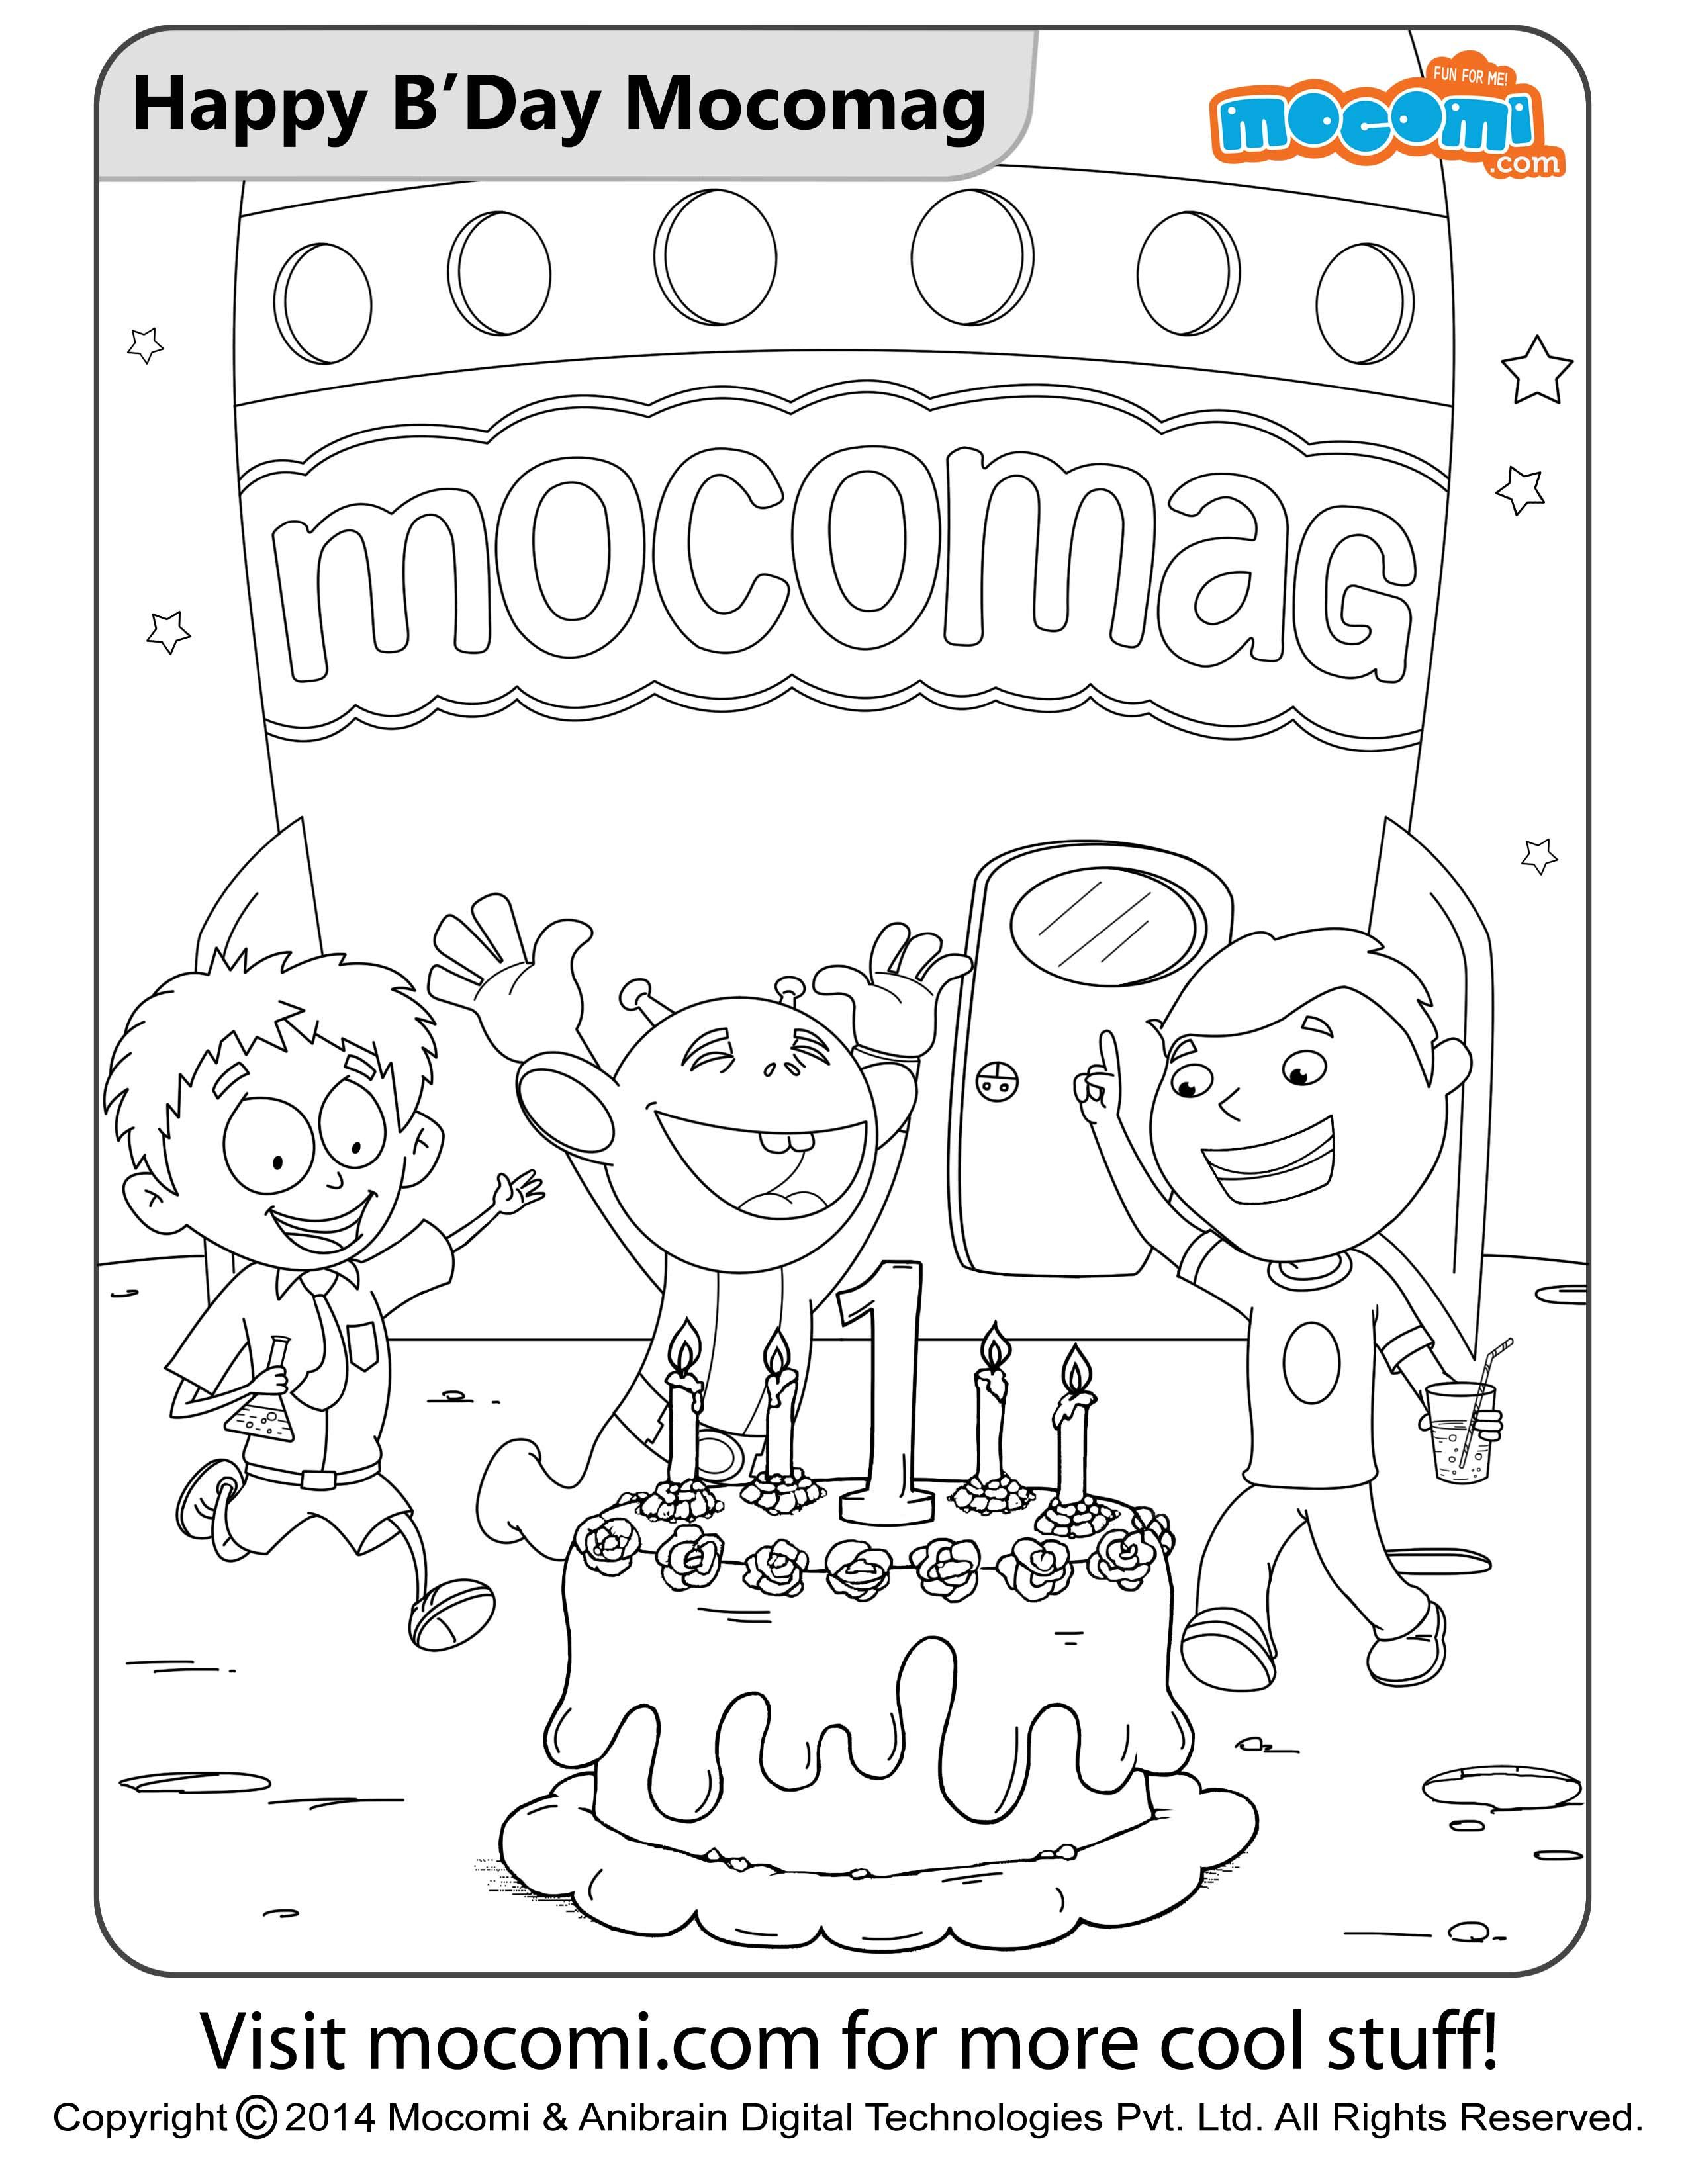 Happy Birthday Mocomag - Colouring Pages for Kids | Pinterest ...